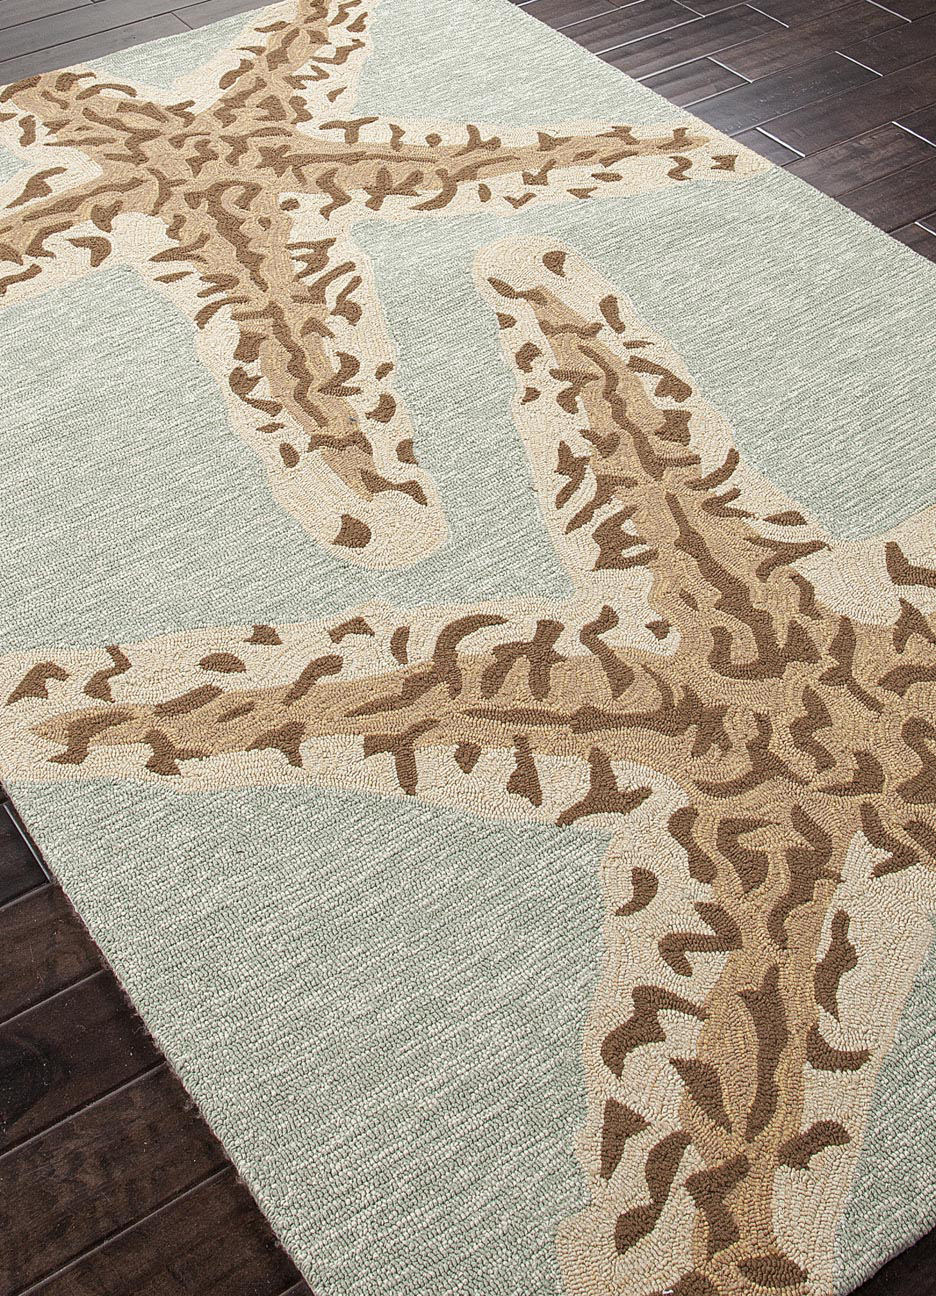 Addison And Banks Hand Hooked Abr0383 Silver Lake Blue Area Rug - 82029